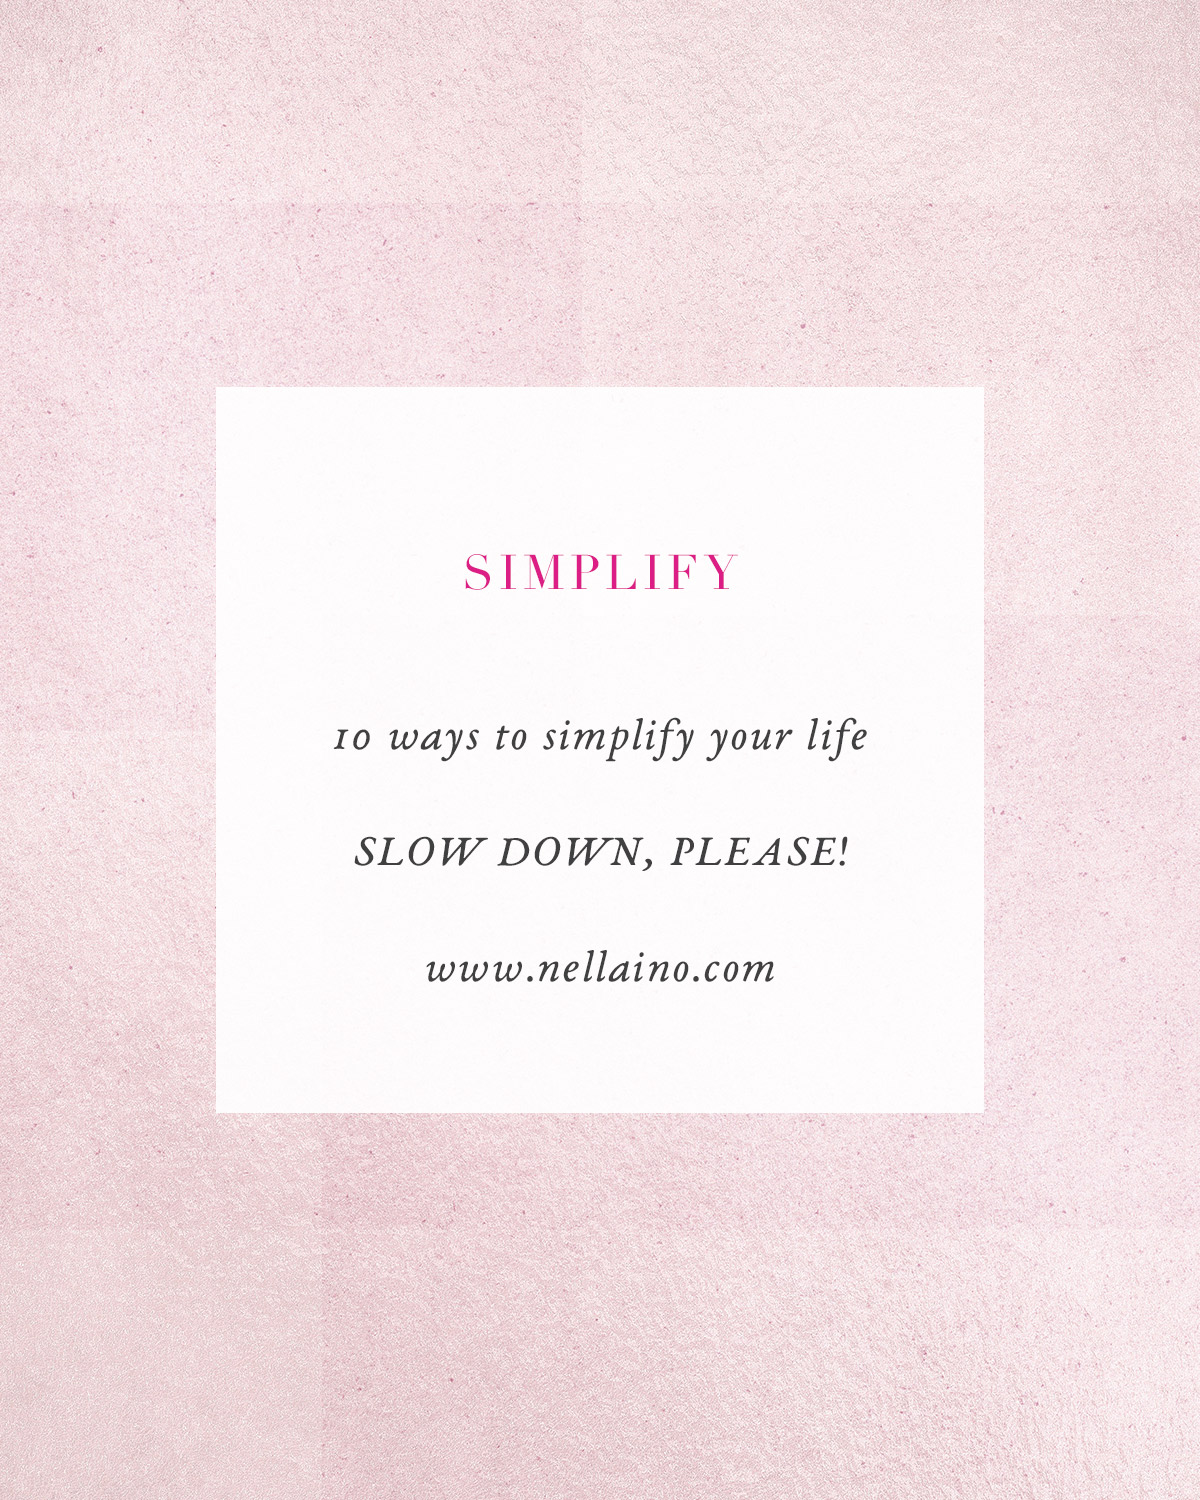 10 ways to simplify your life. Slow down and enjoy the life around you!